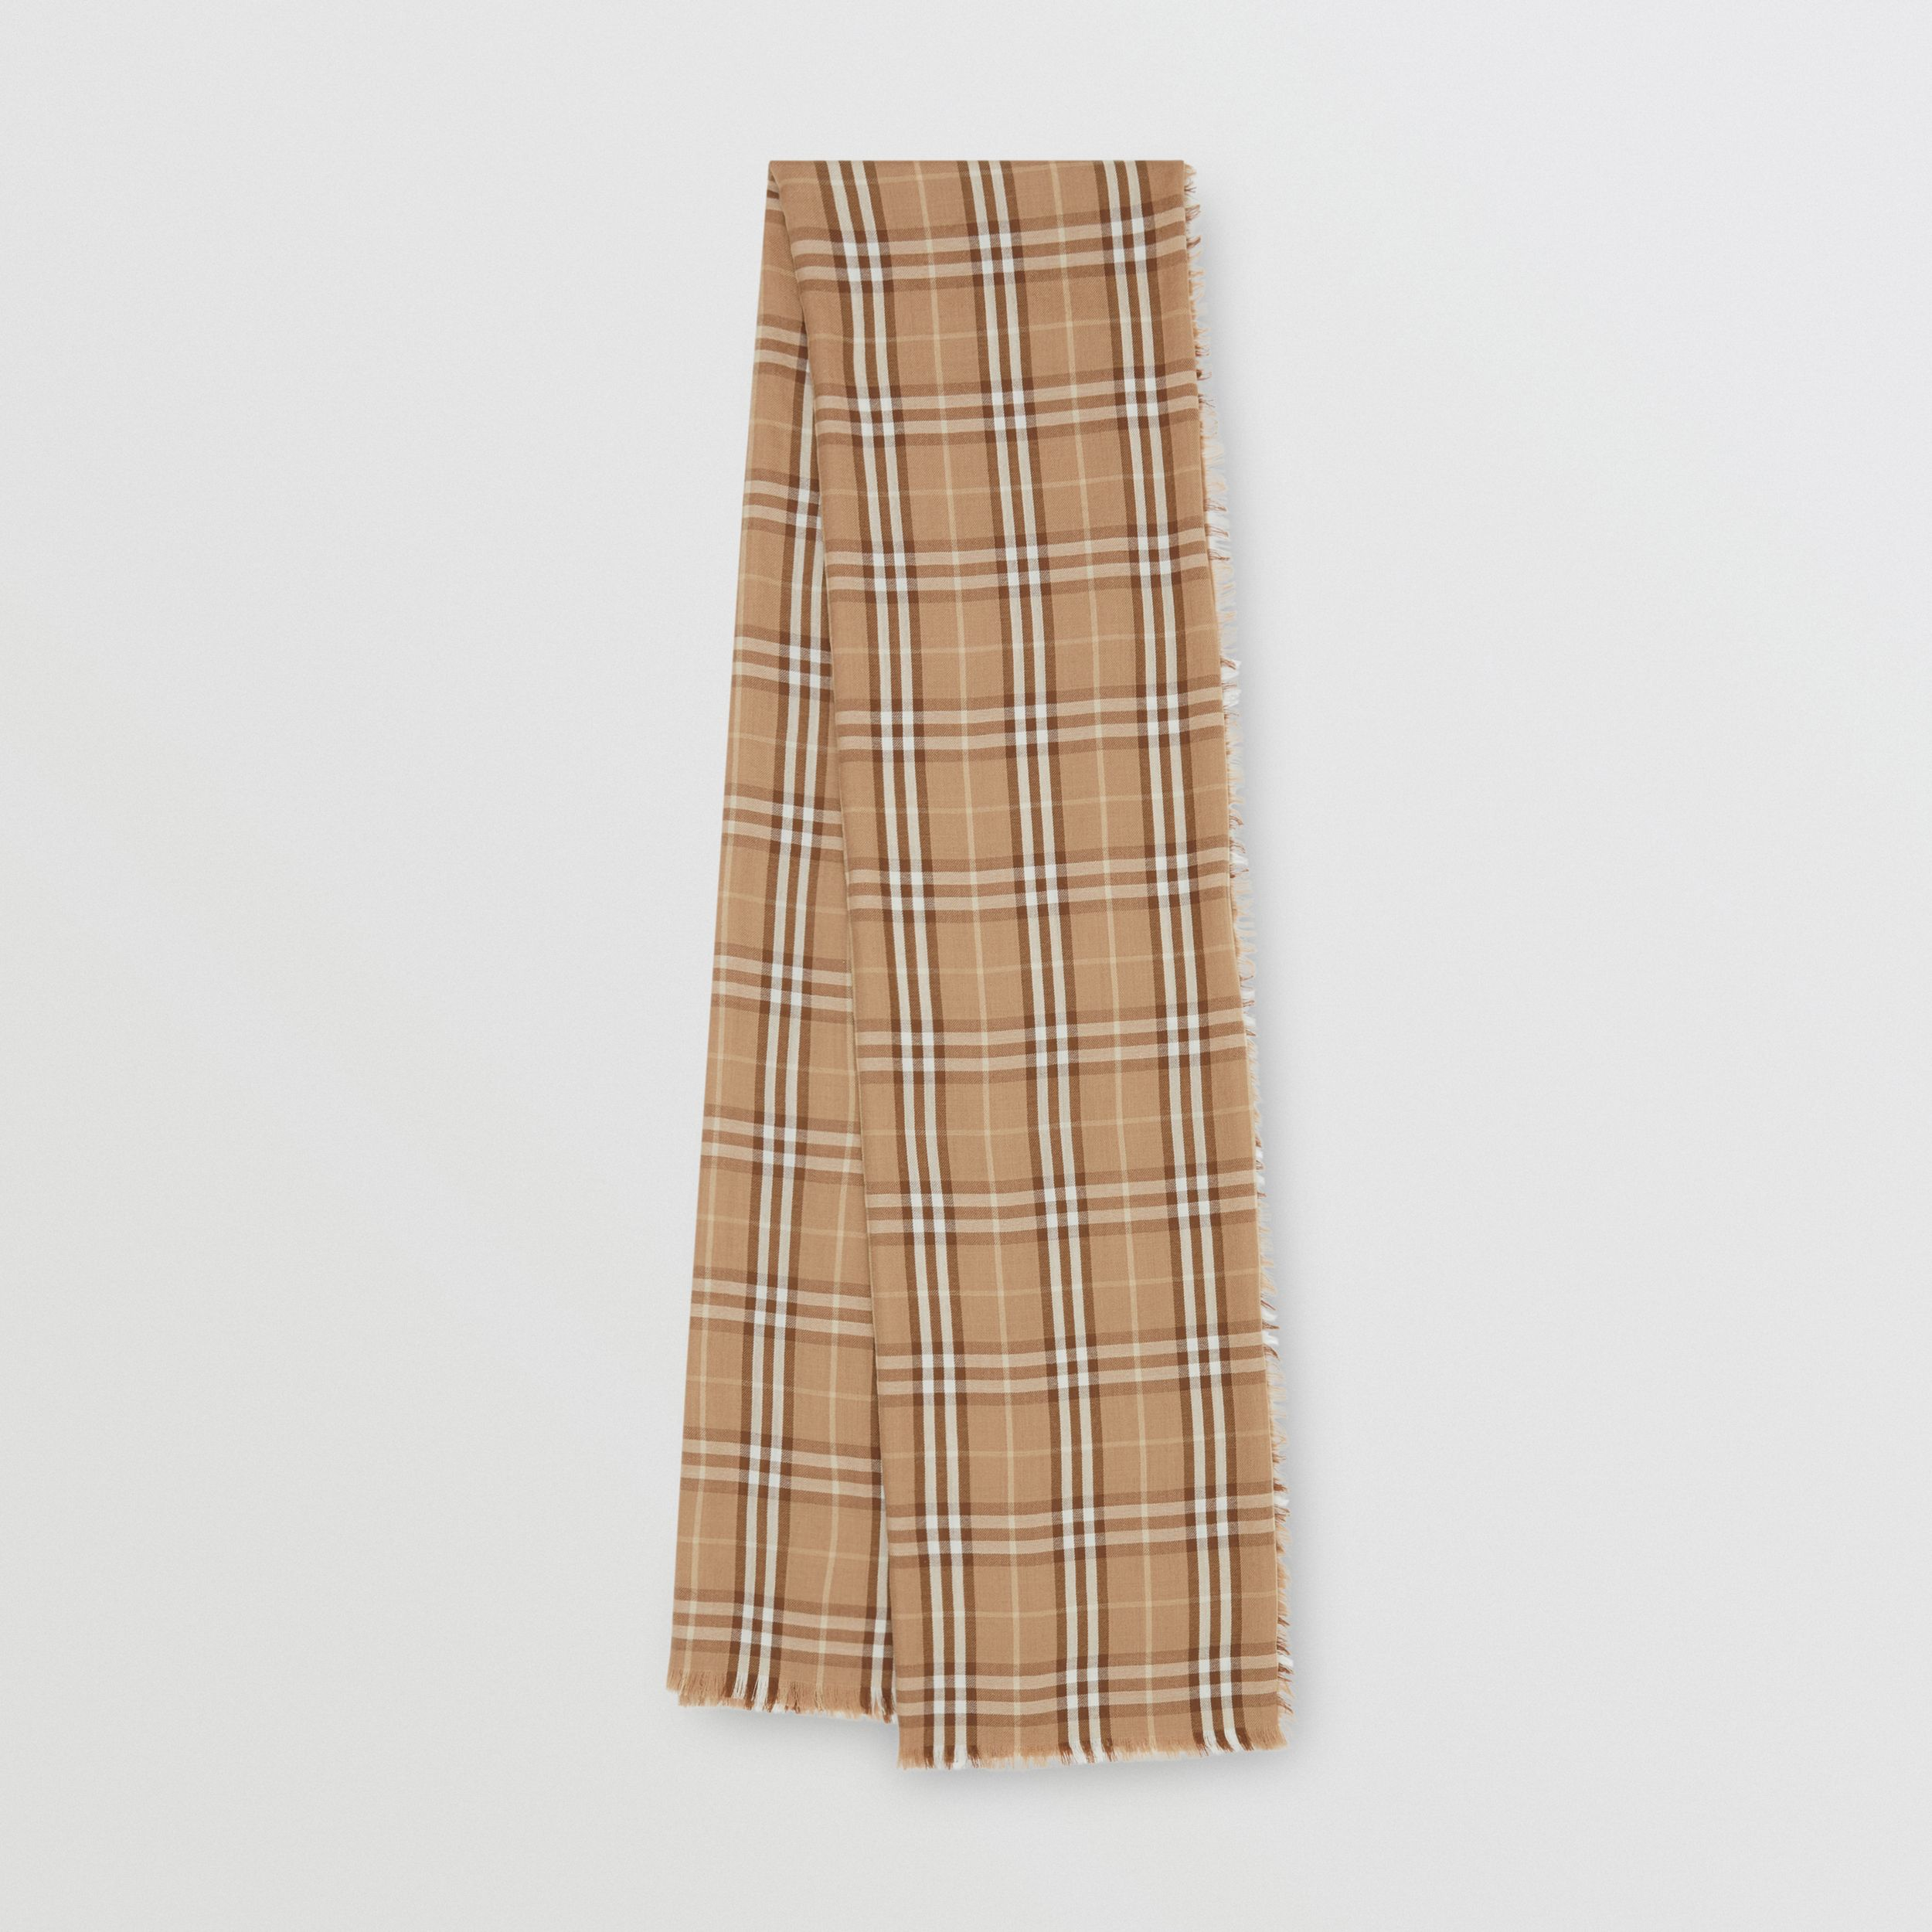 Vintage Check Lightweight Cashmere Scarf in Mid Camel | Burberry - 1